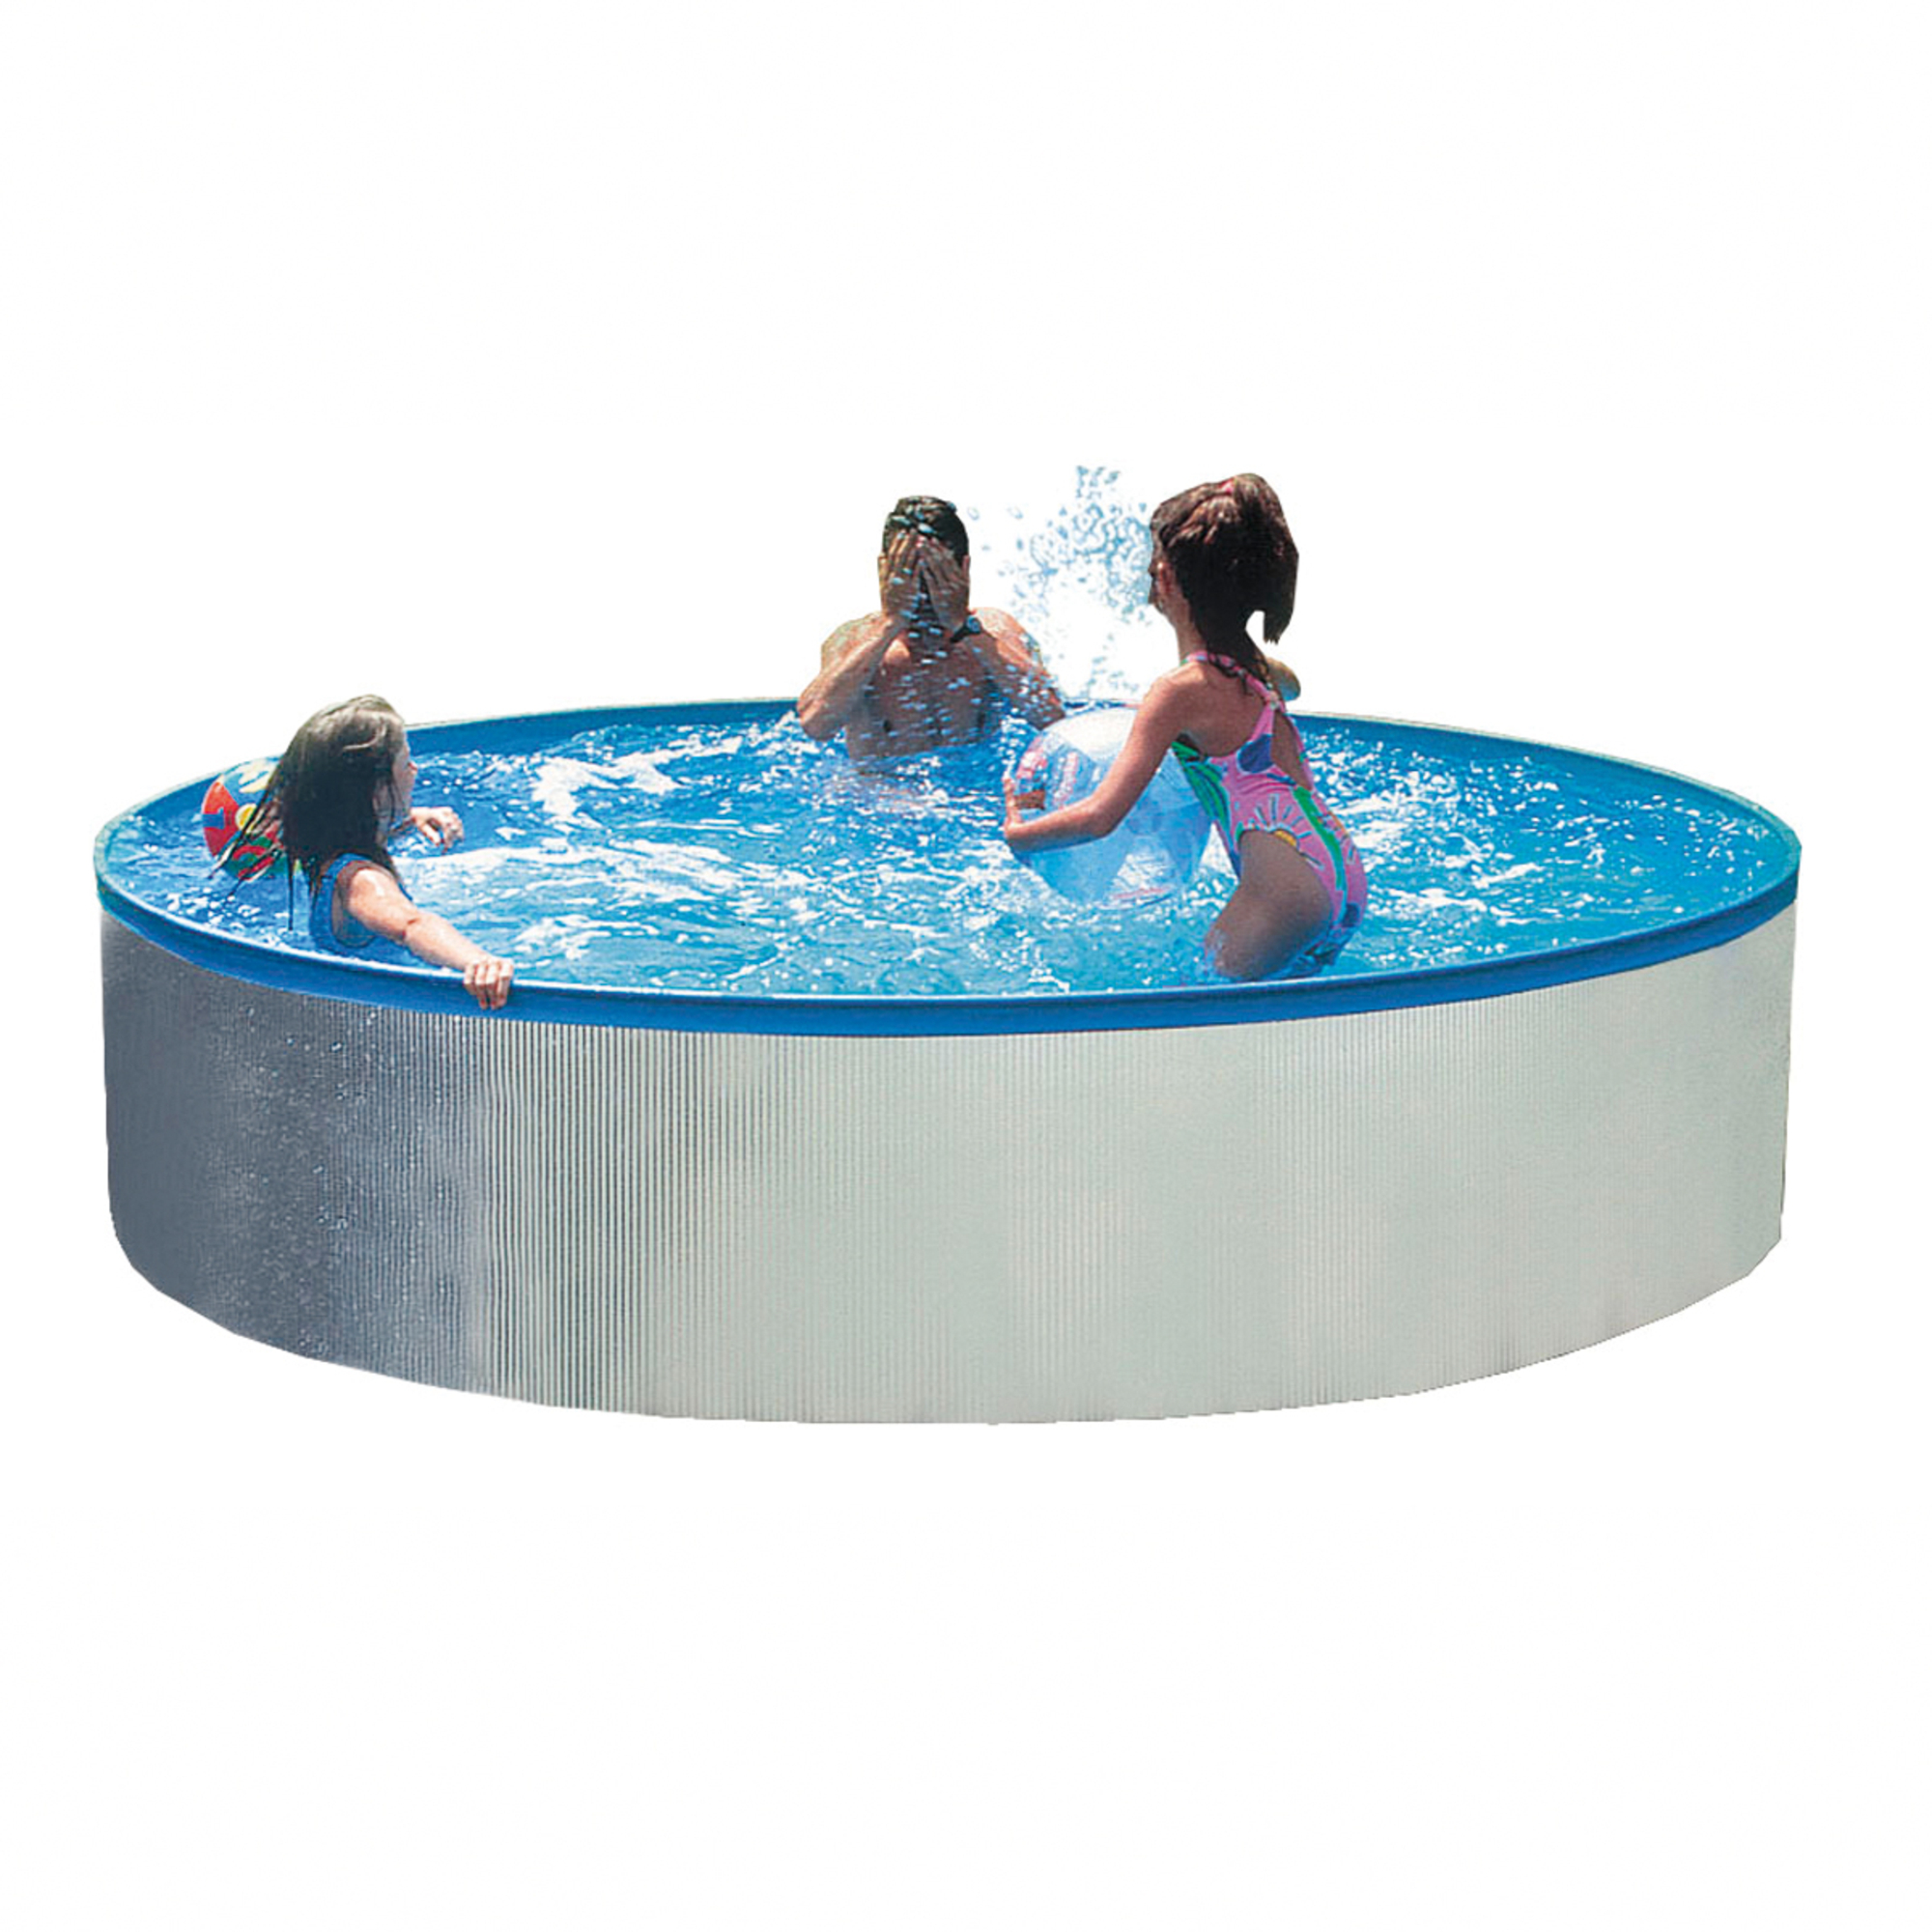 piscine gonflable solde maison design